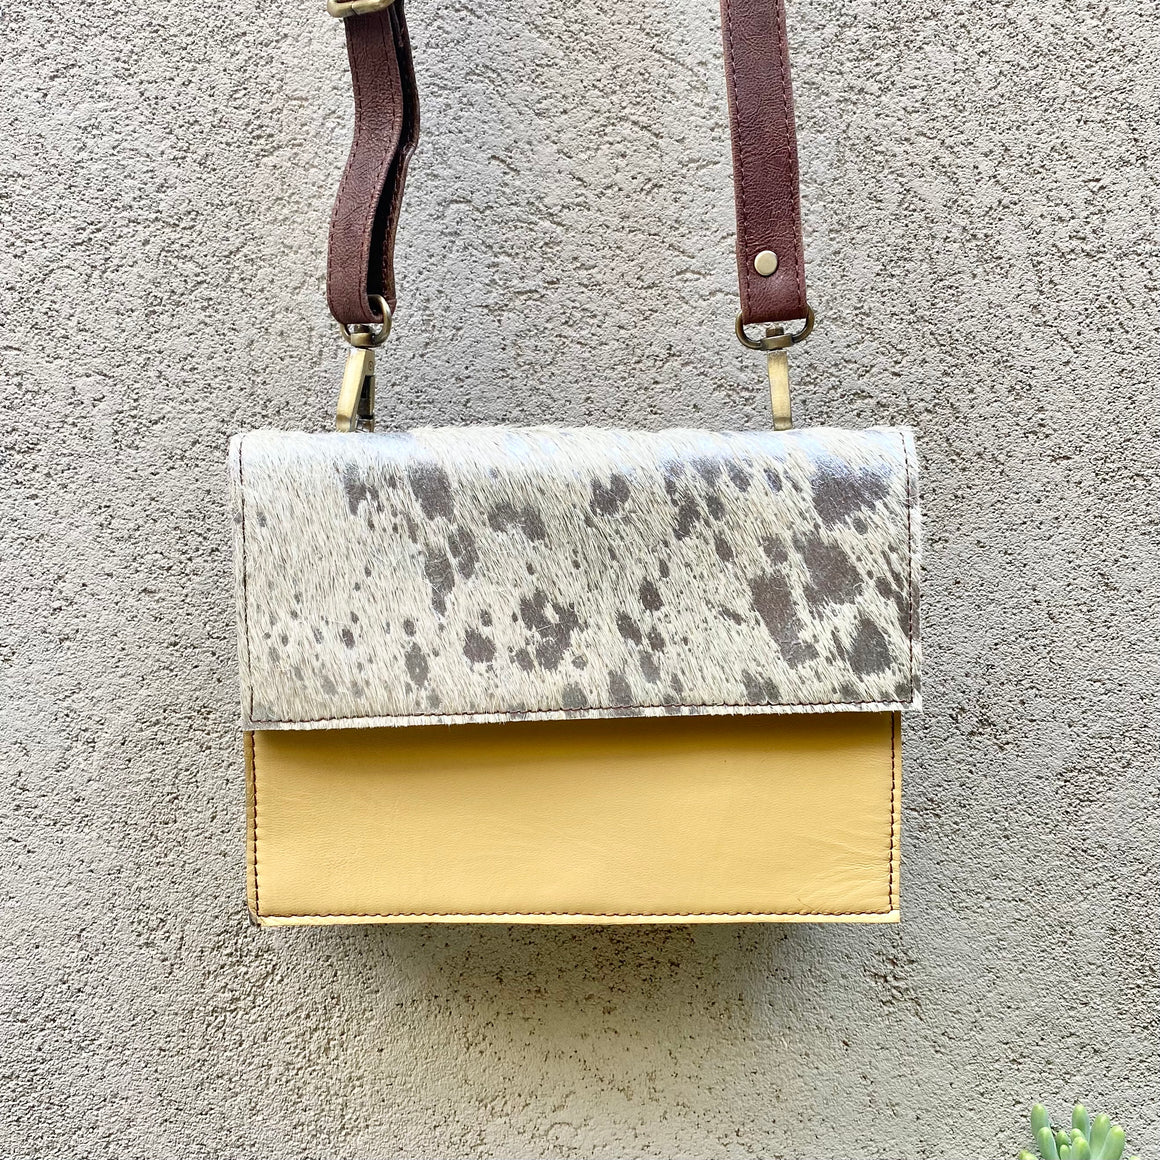 Star Cowhide and Leather Crossbody Clutch Bag - White, Silver Foil, Sand, Chocolate, Clutch Bag - KITTY KAT,